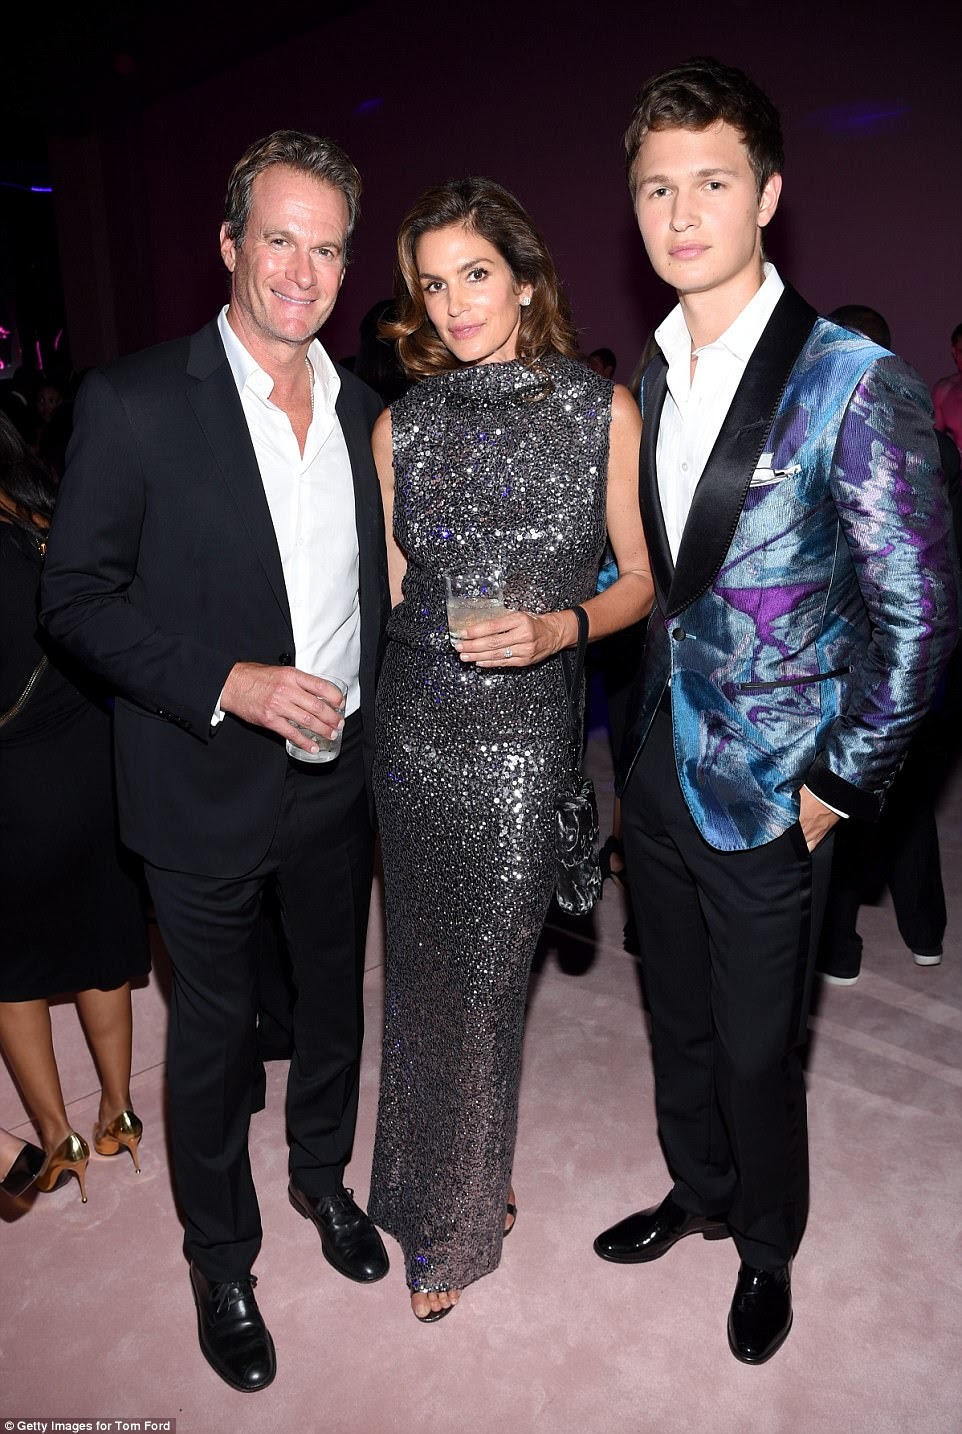 The couple also took time to pose with actor Ansel Elgort before the show